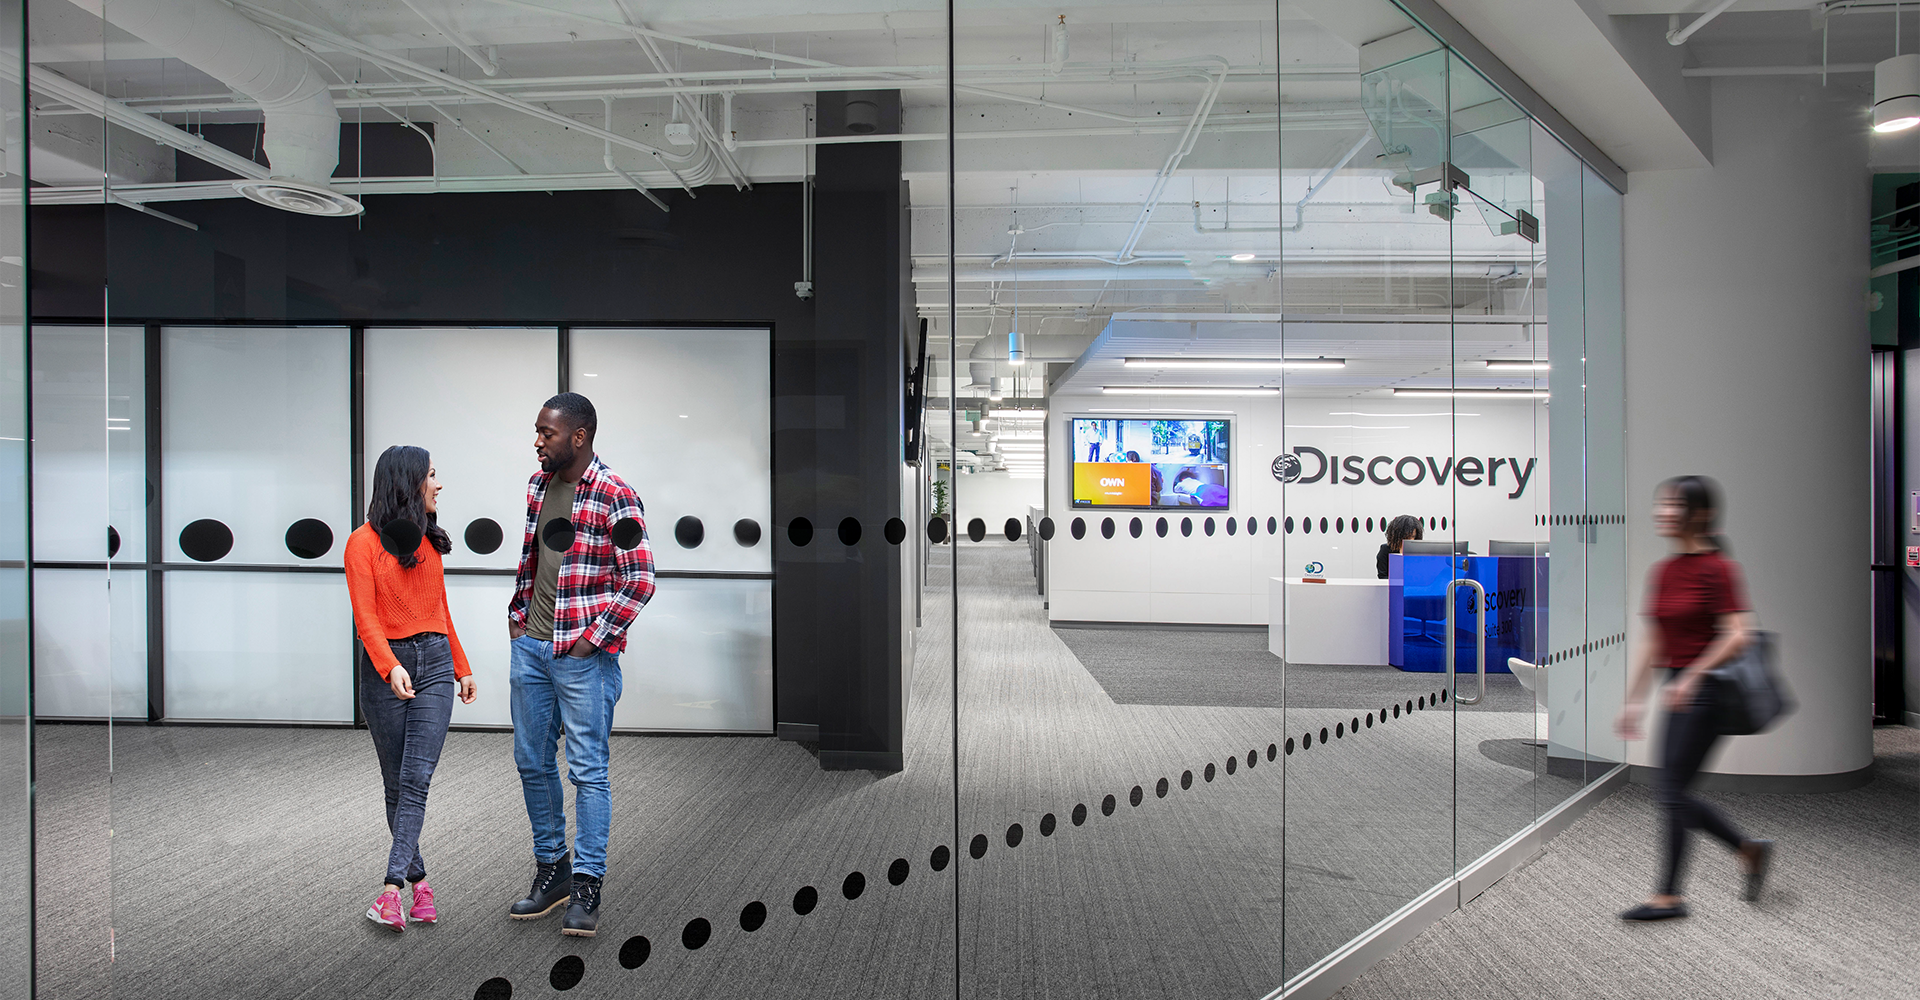 Discovery's Miami Workplace